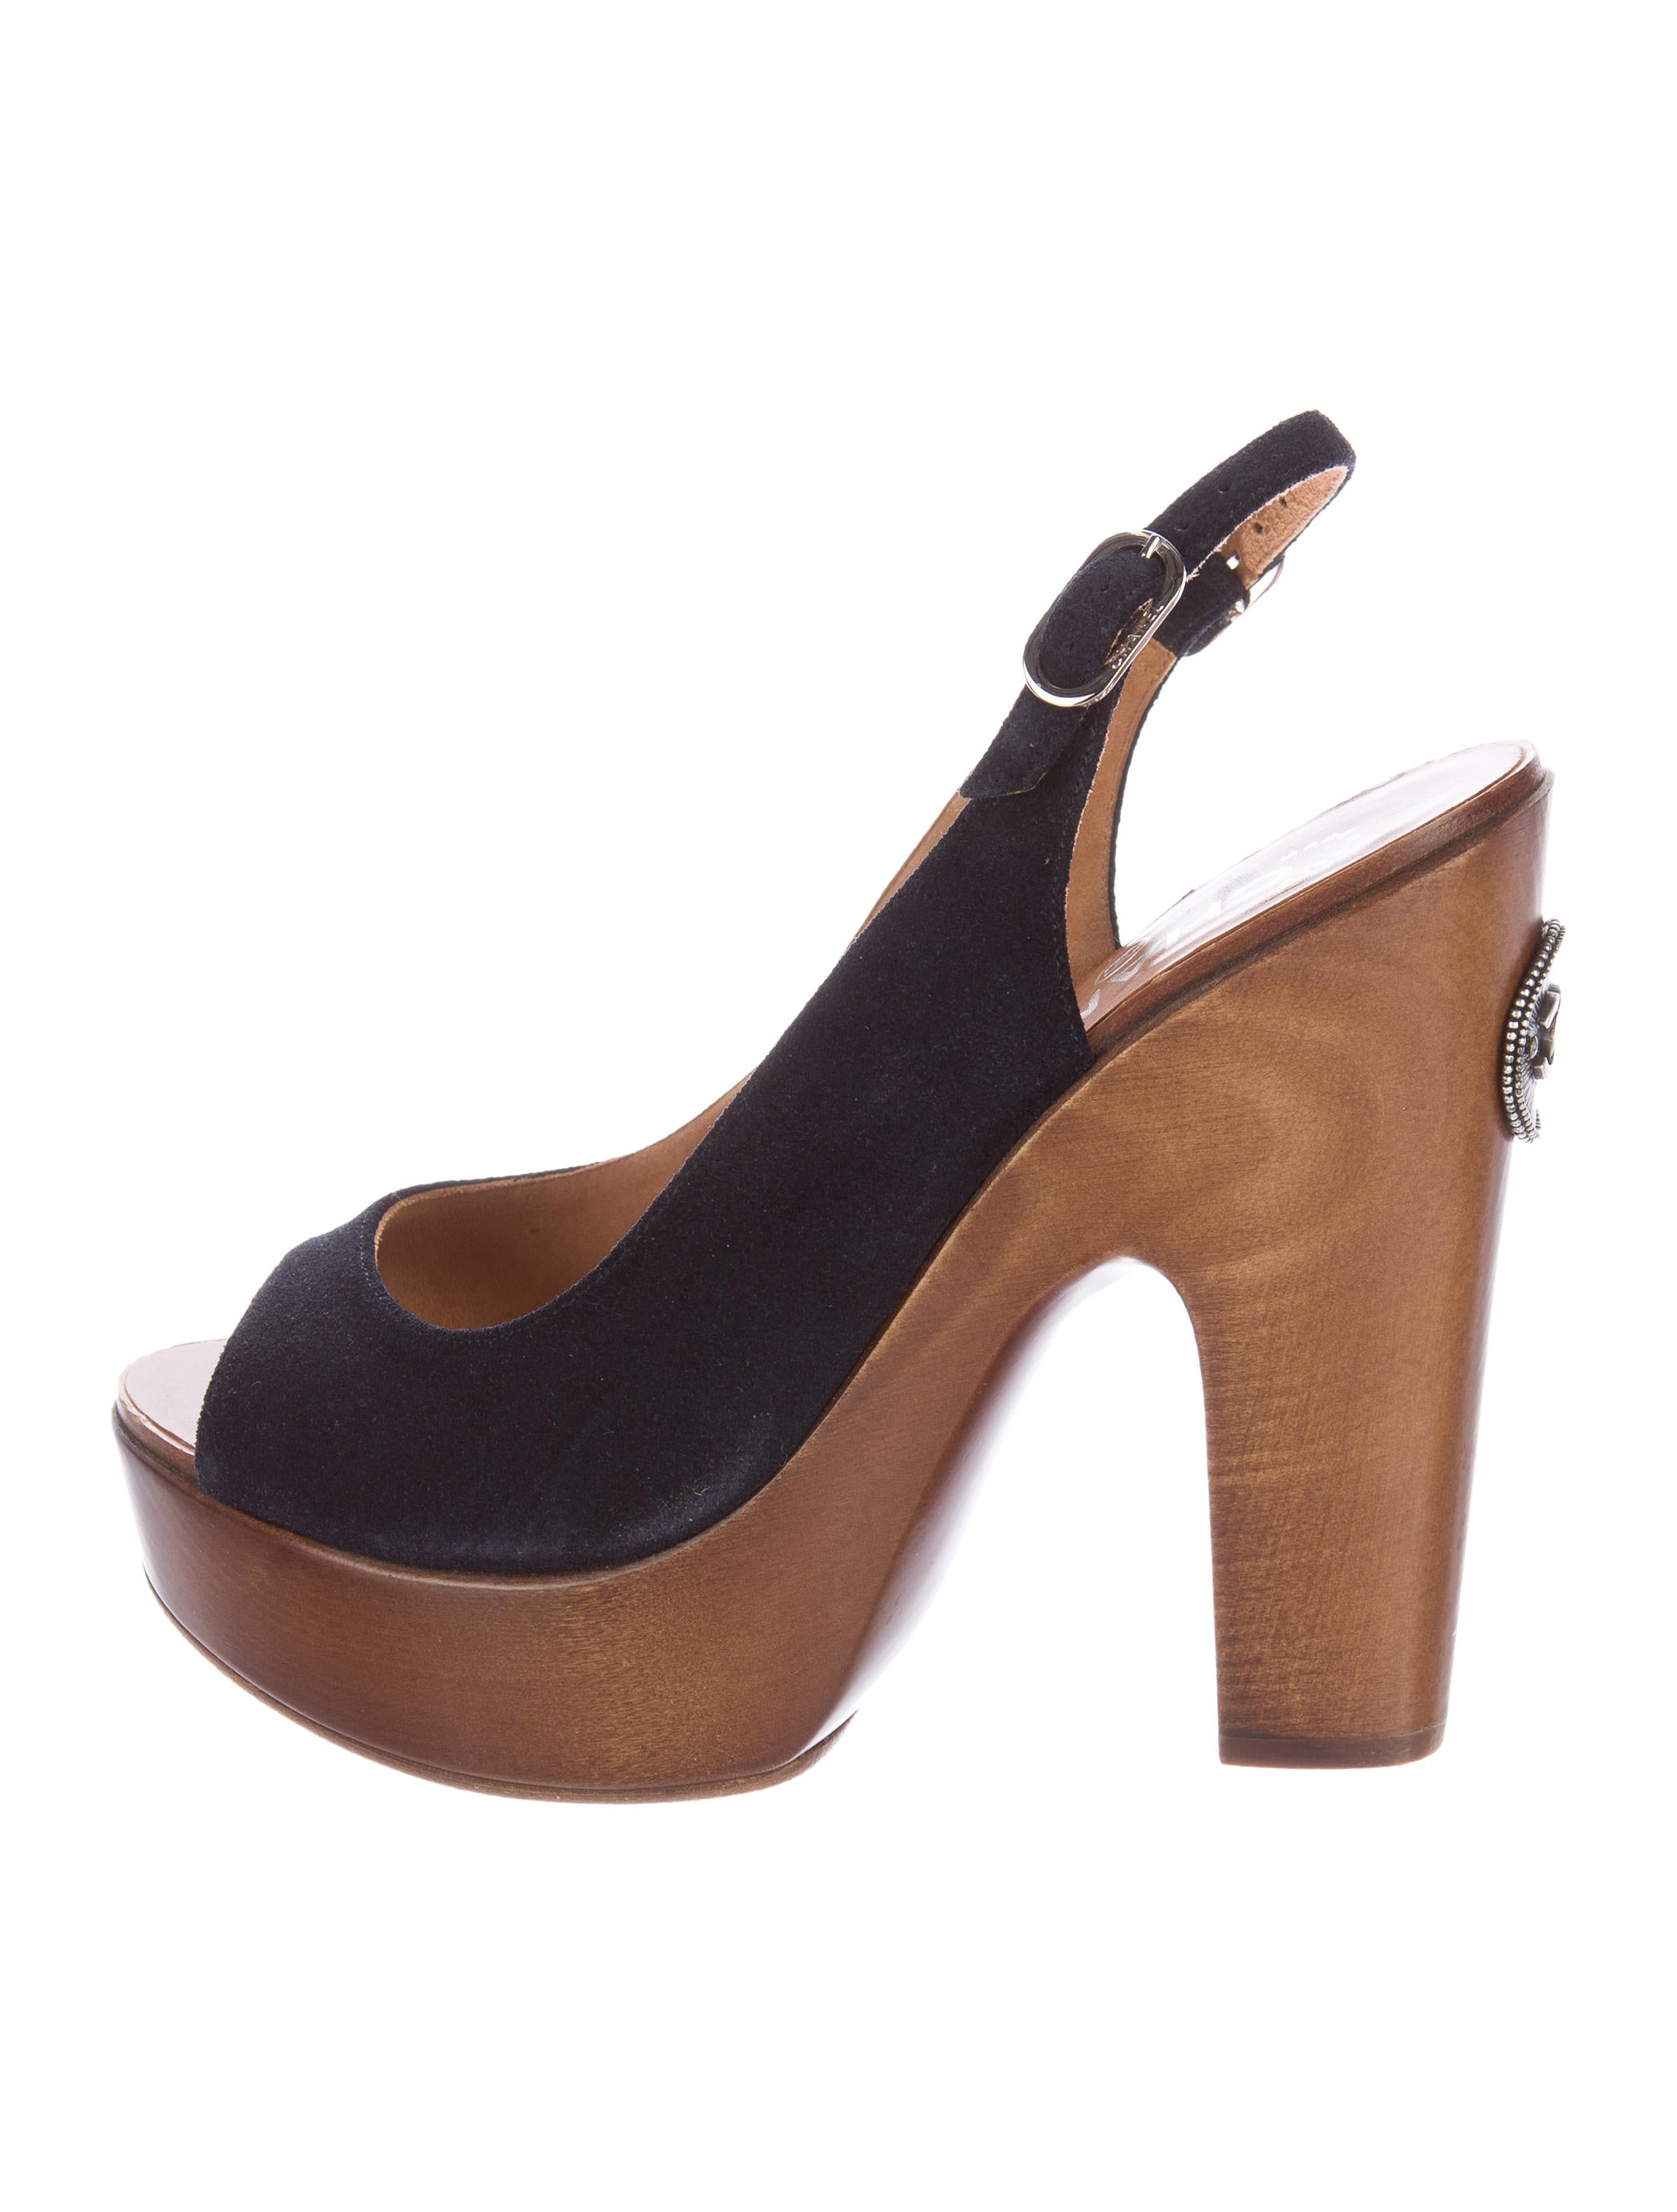 Yellow peep toe heels, purple peep toe heels and silver peep toe heels make different styles. Peep toe heels for wedding is also a good choice for a big day. You can purchase these lower price shoes .